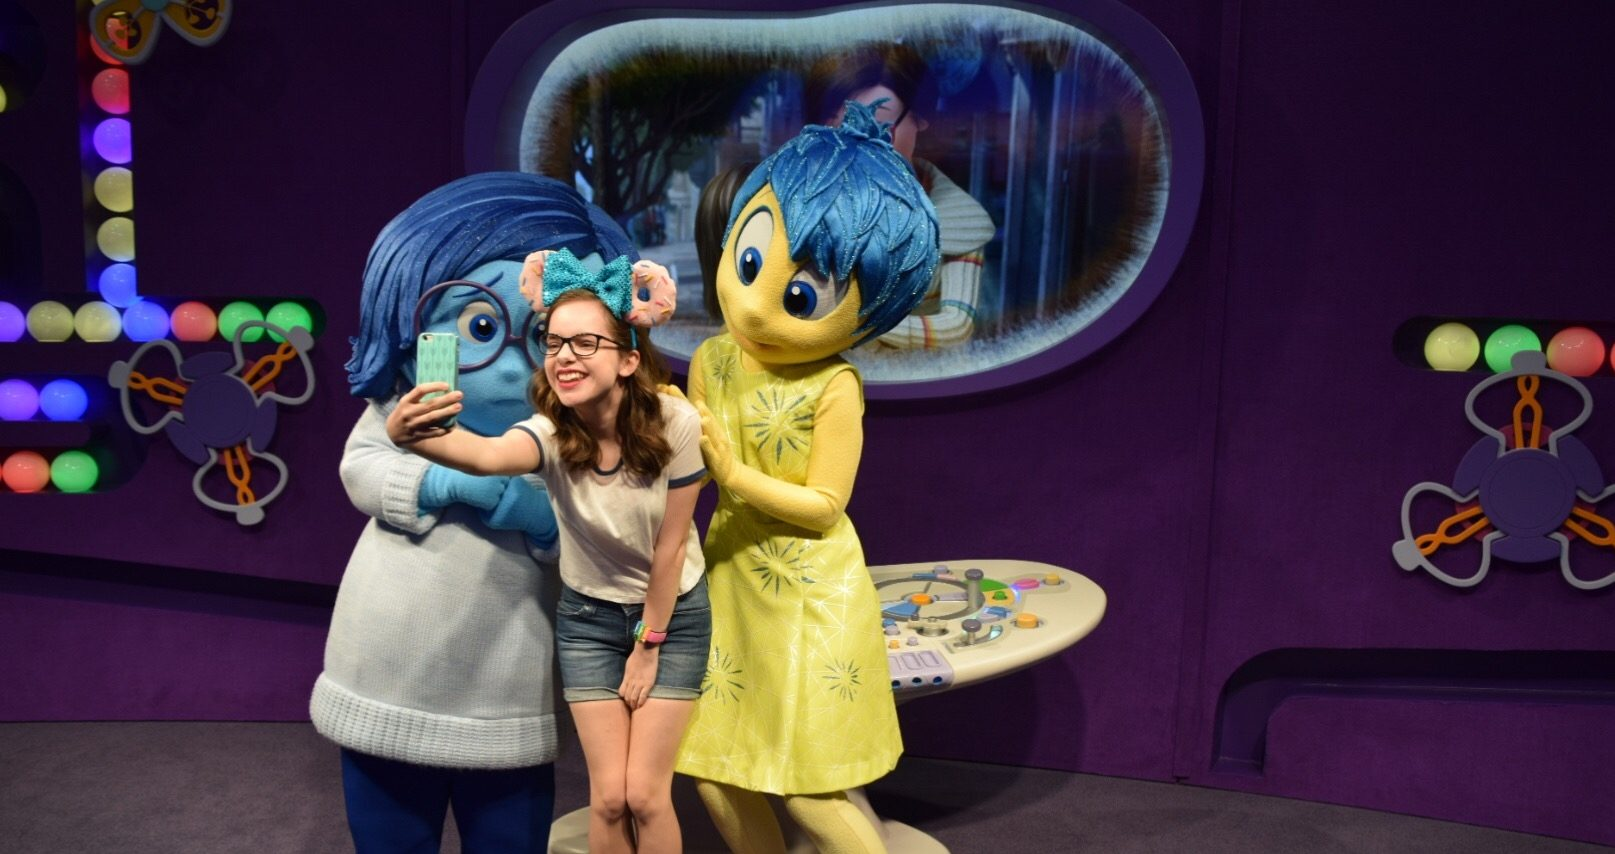 Meet Joy and Sadness from Inside Out!